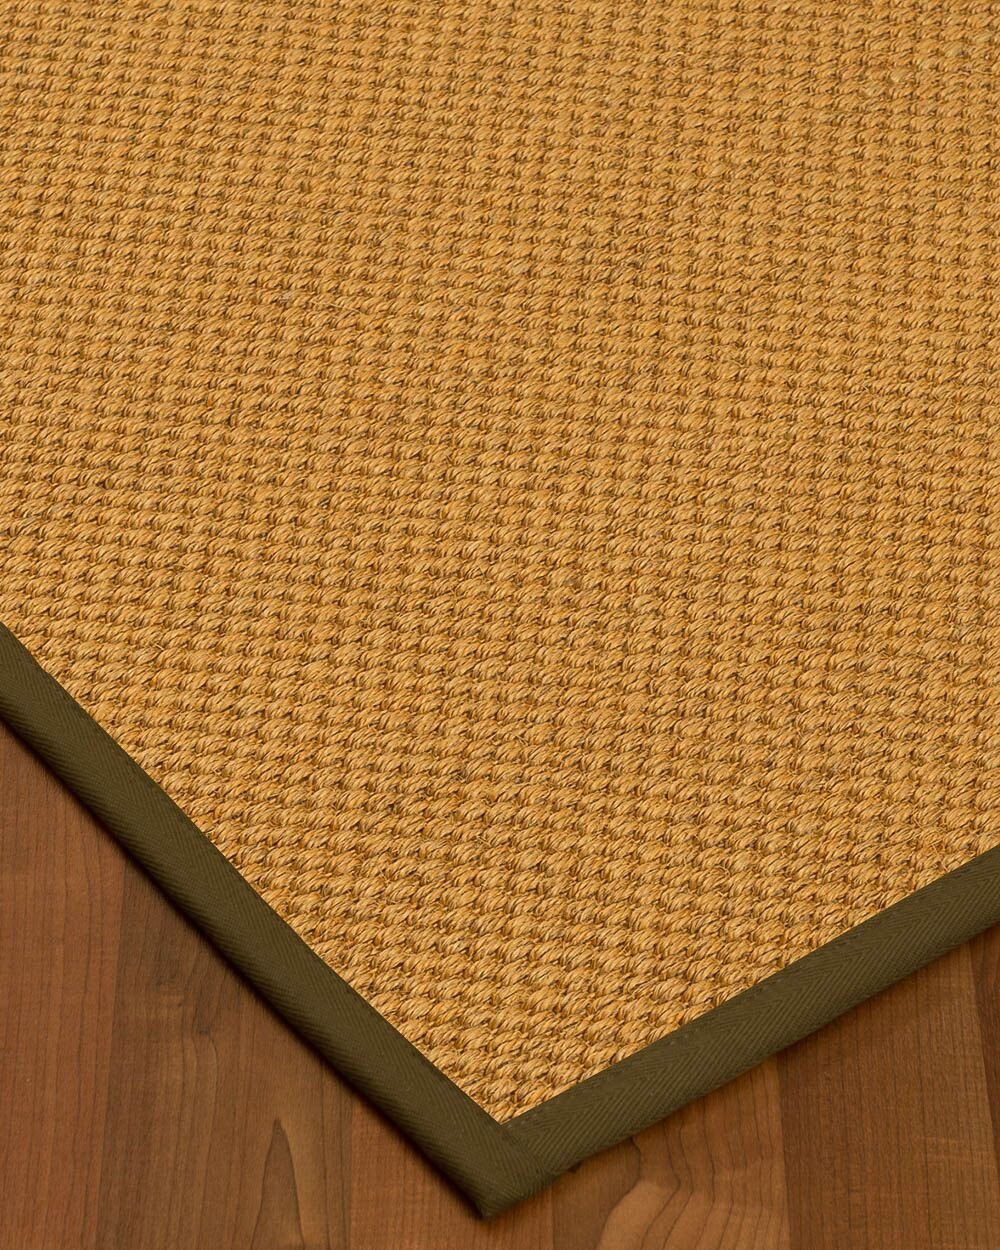 Halter Hand-Woven Beige Area Rug Rug Size: Rectangle 6' x 9'